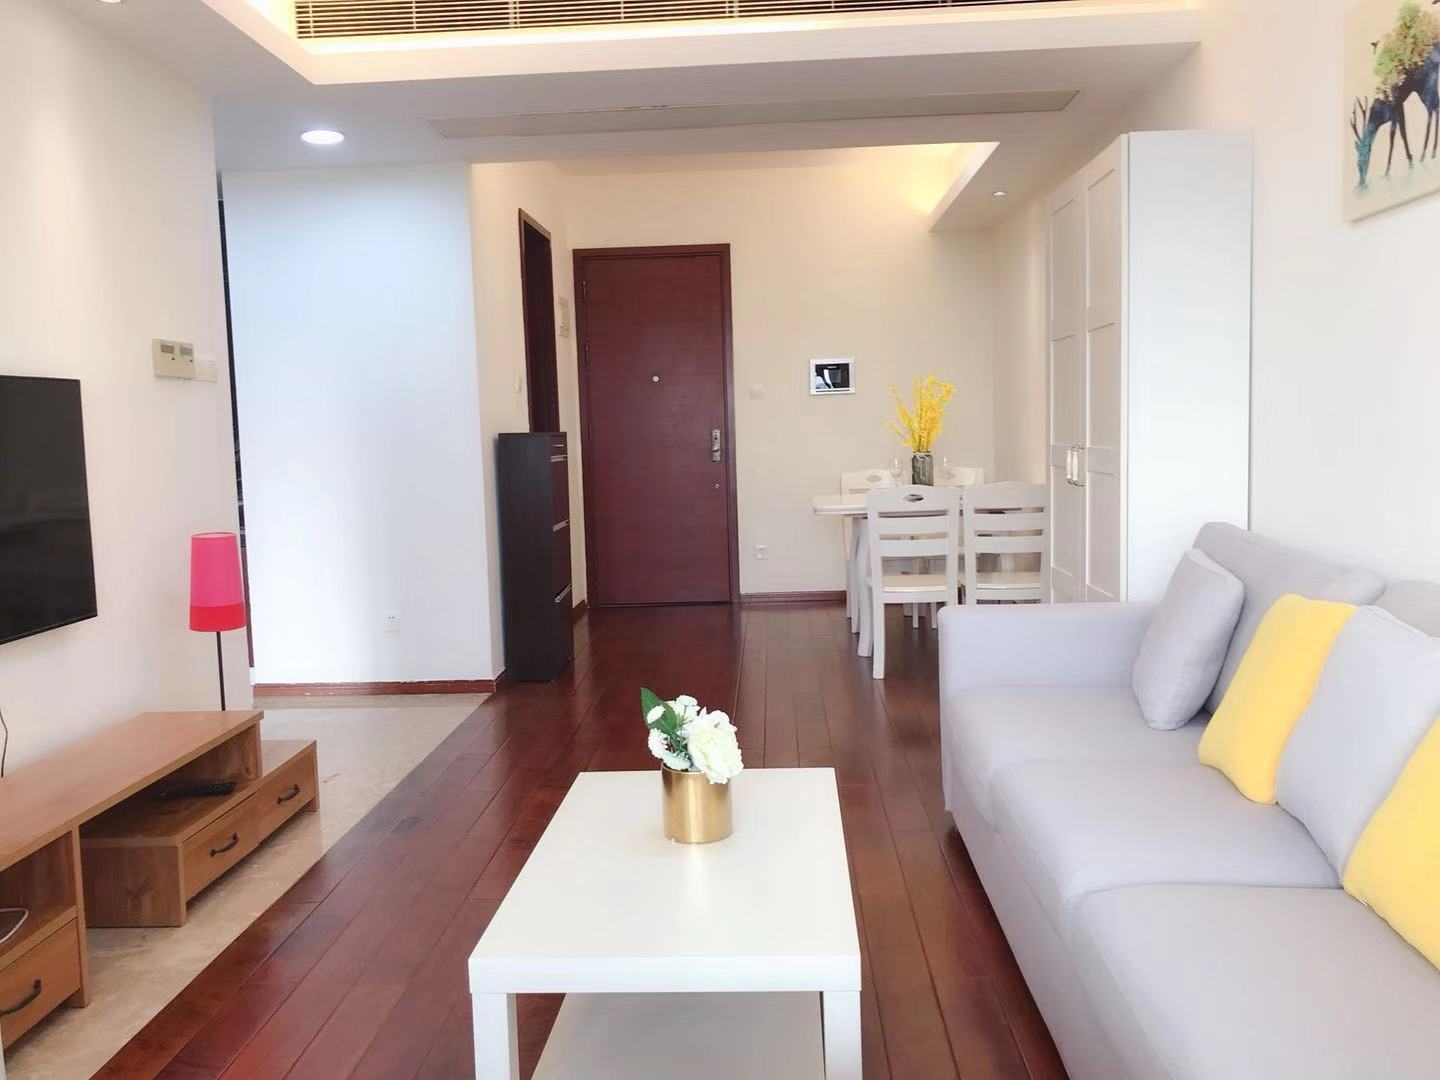 Modern 1 bedroom apartment in shekou for rent